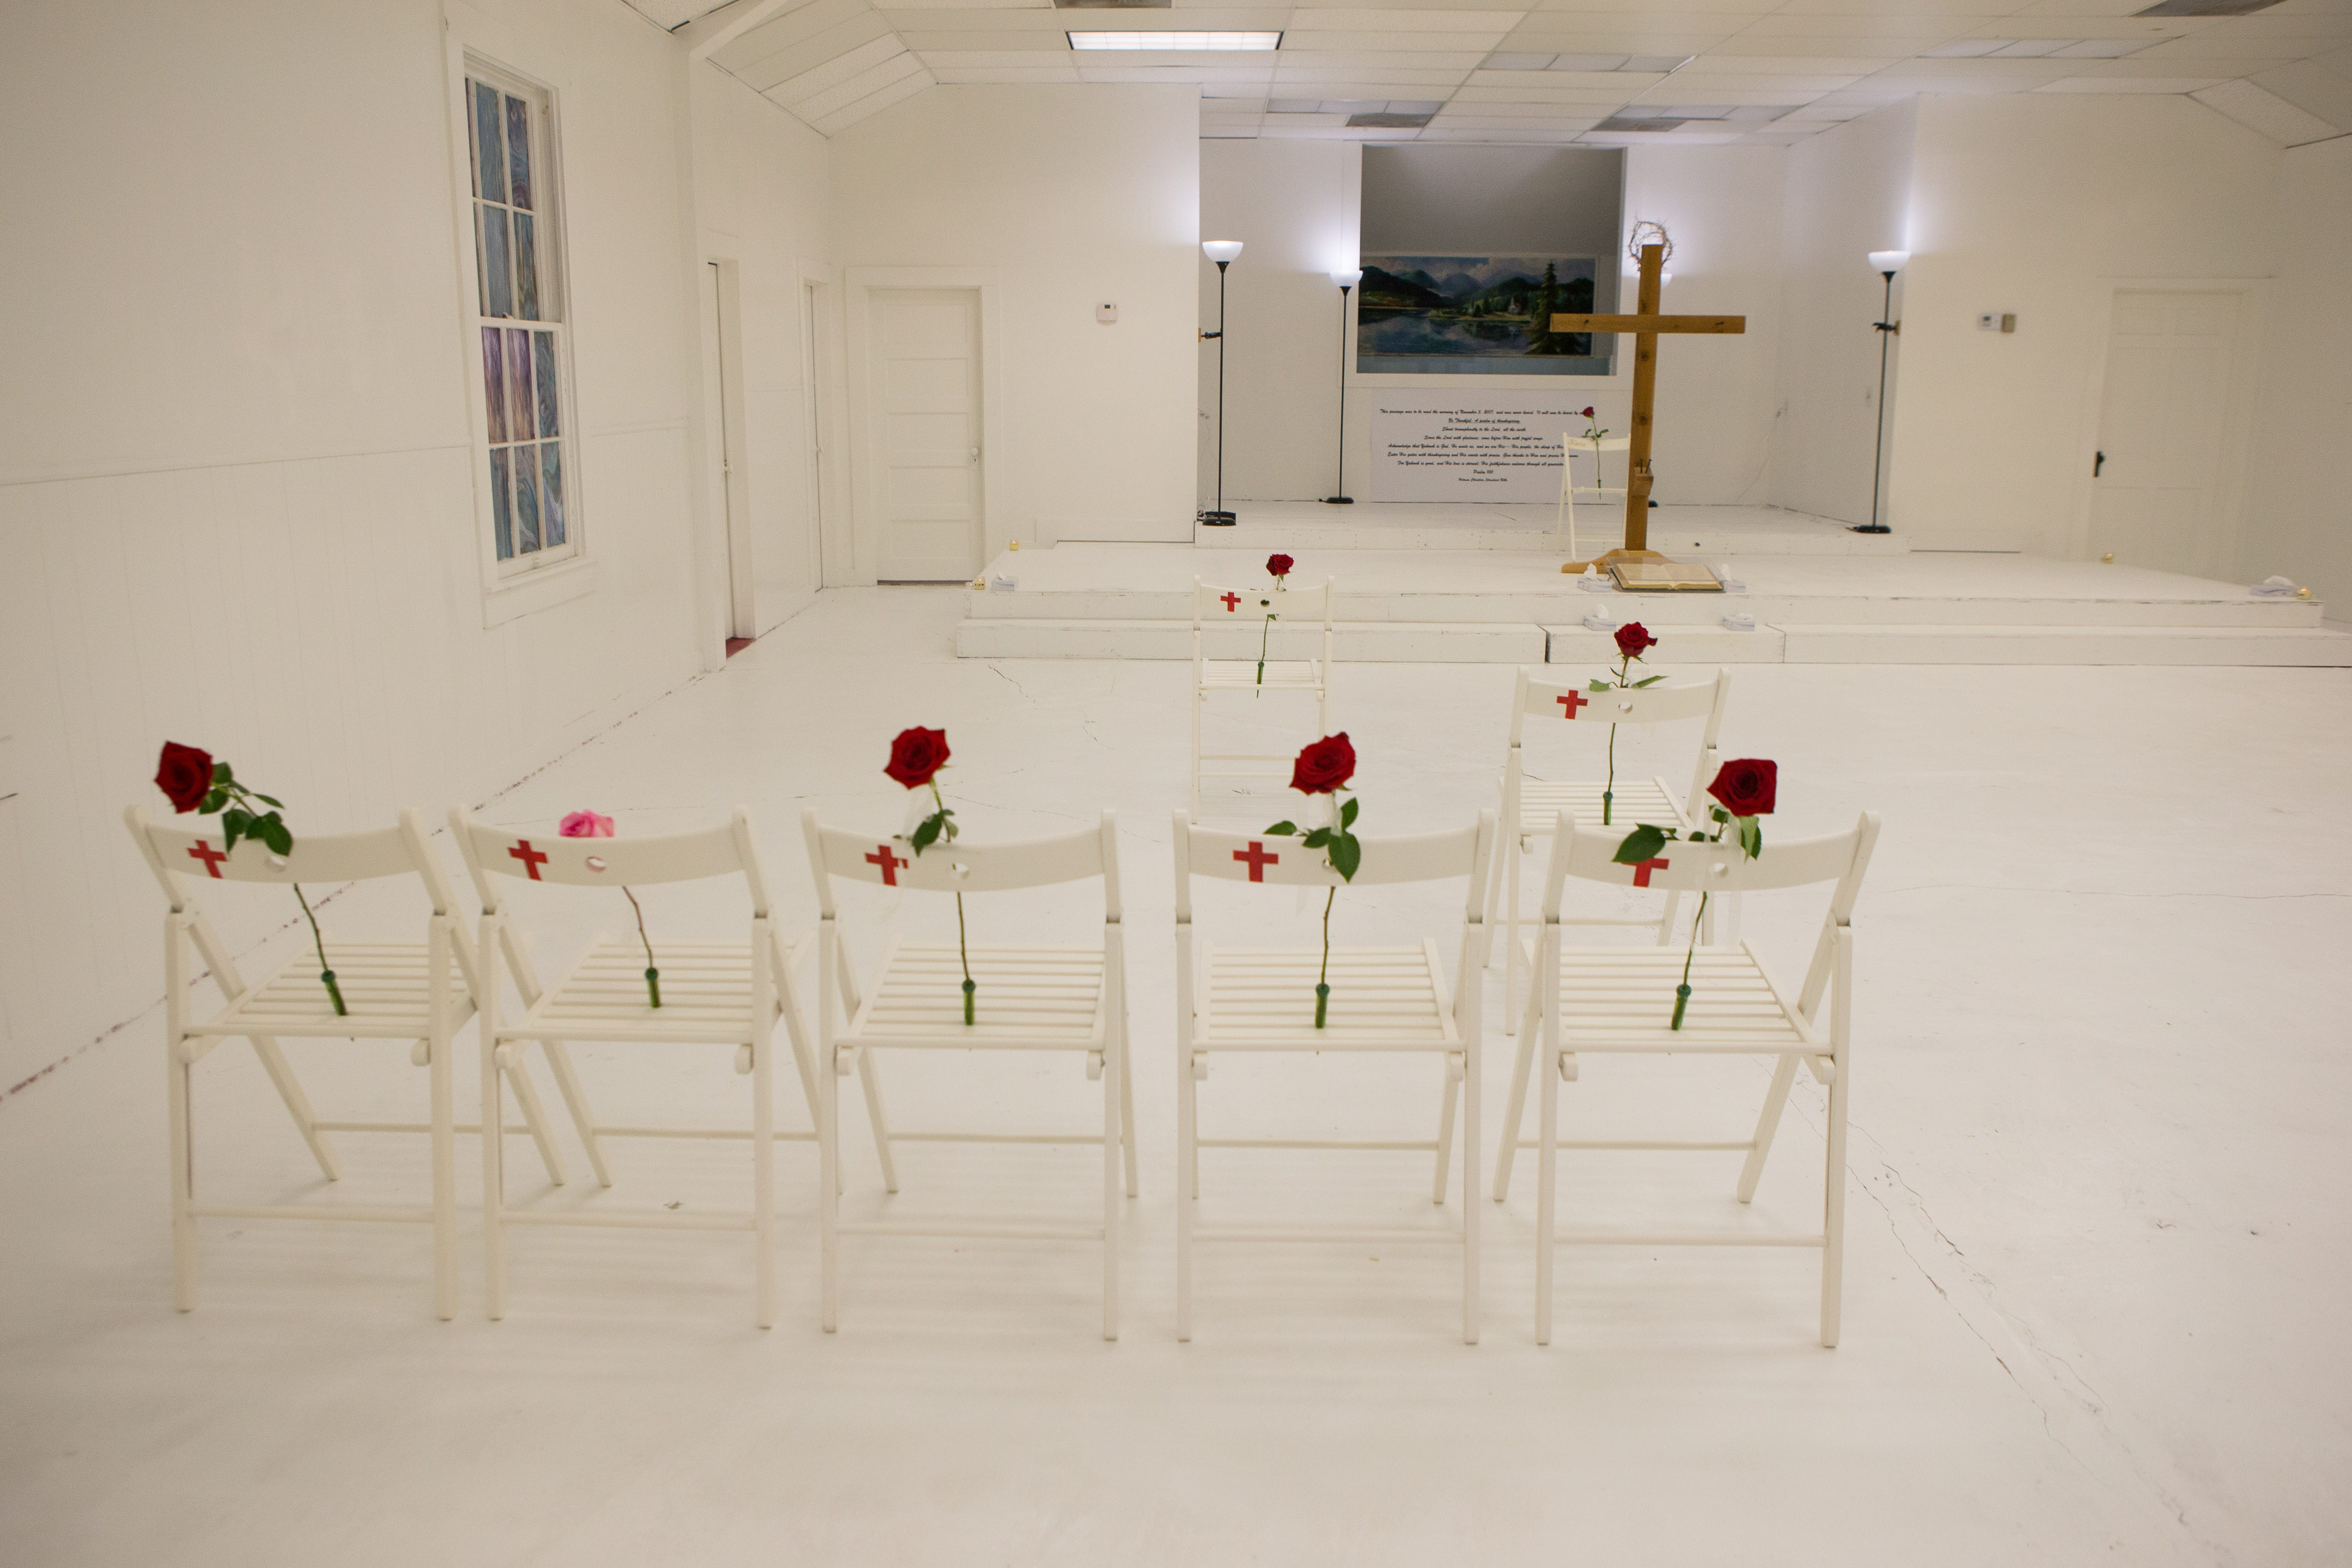 Chairs with flowers were placed in the sanctuary of First Baptist Church of Sutherland Springs in 2017 as a memorial to honor those who died in a mass shooting at the church. Twenty five people were killed including a pregnant woman.